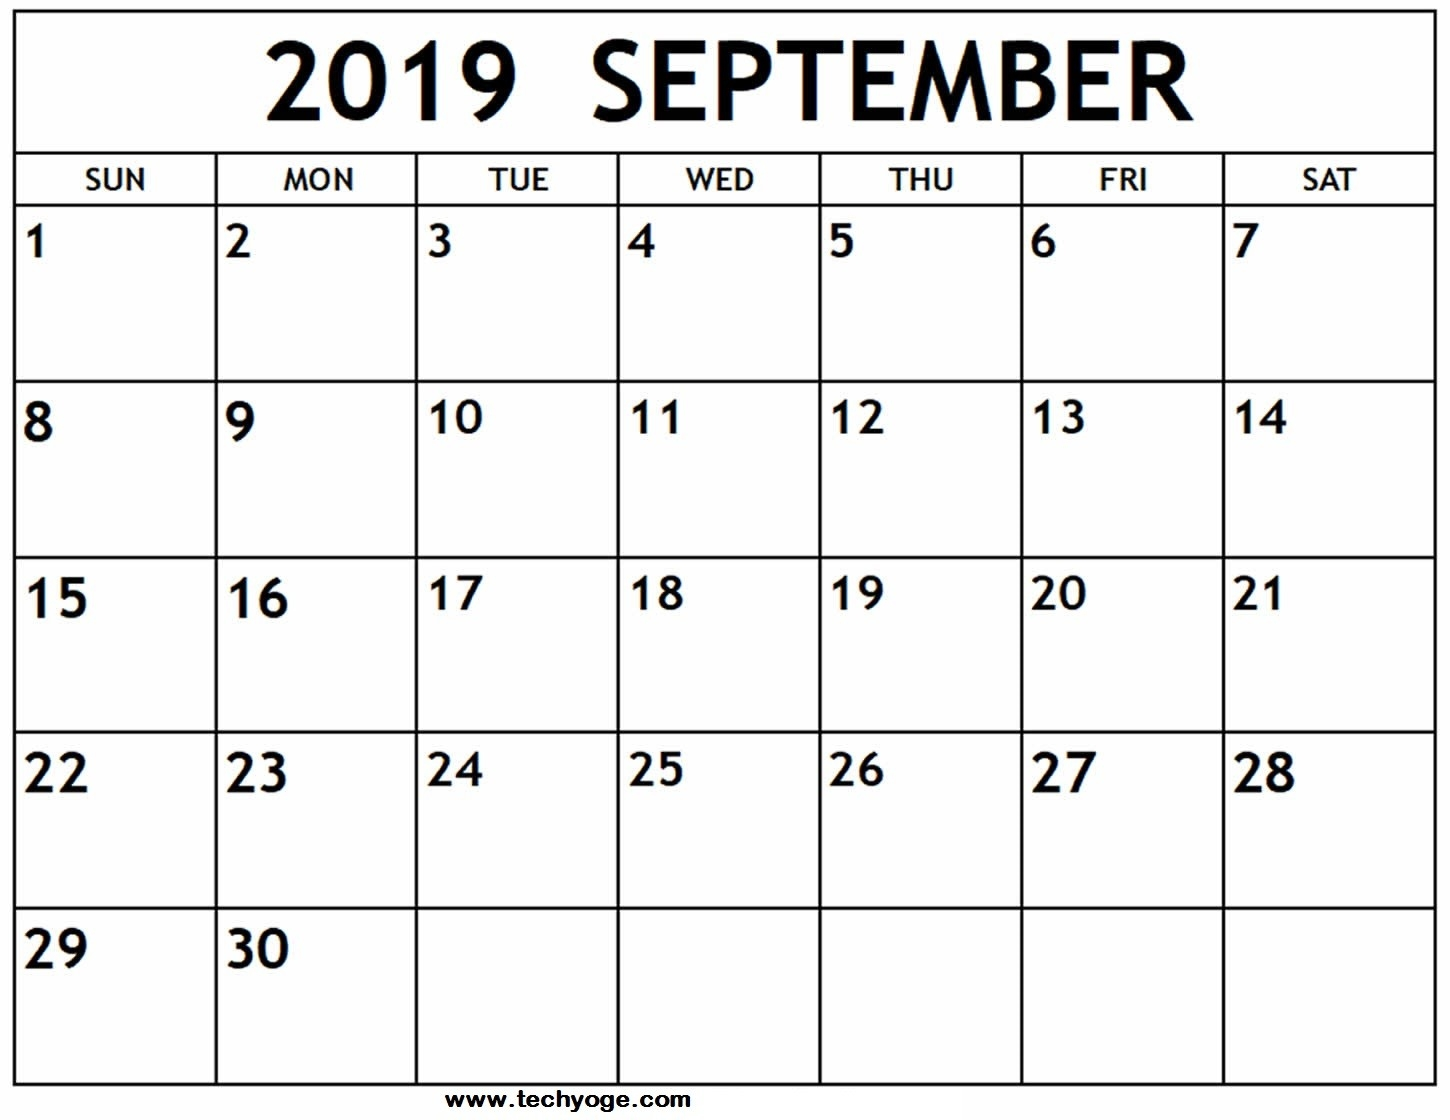 Printable September 2019 Calendar With Holidays Template-Fill In The Blank July 2919 Calendar